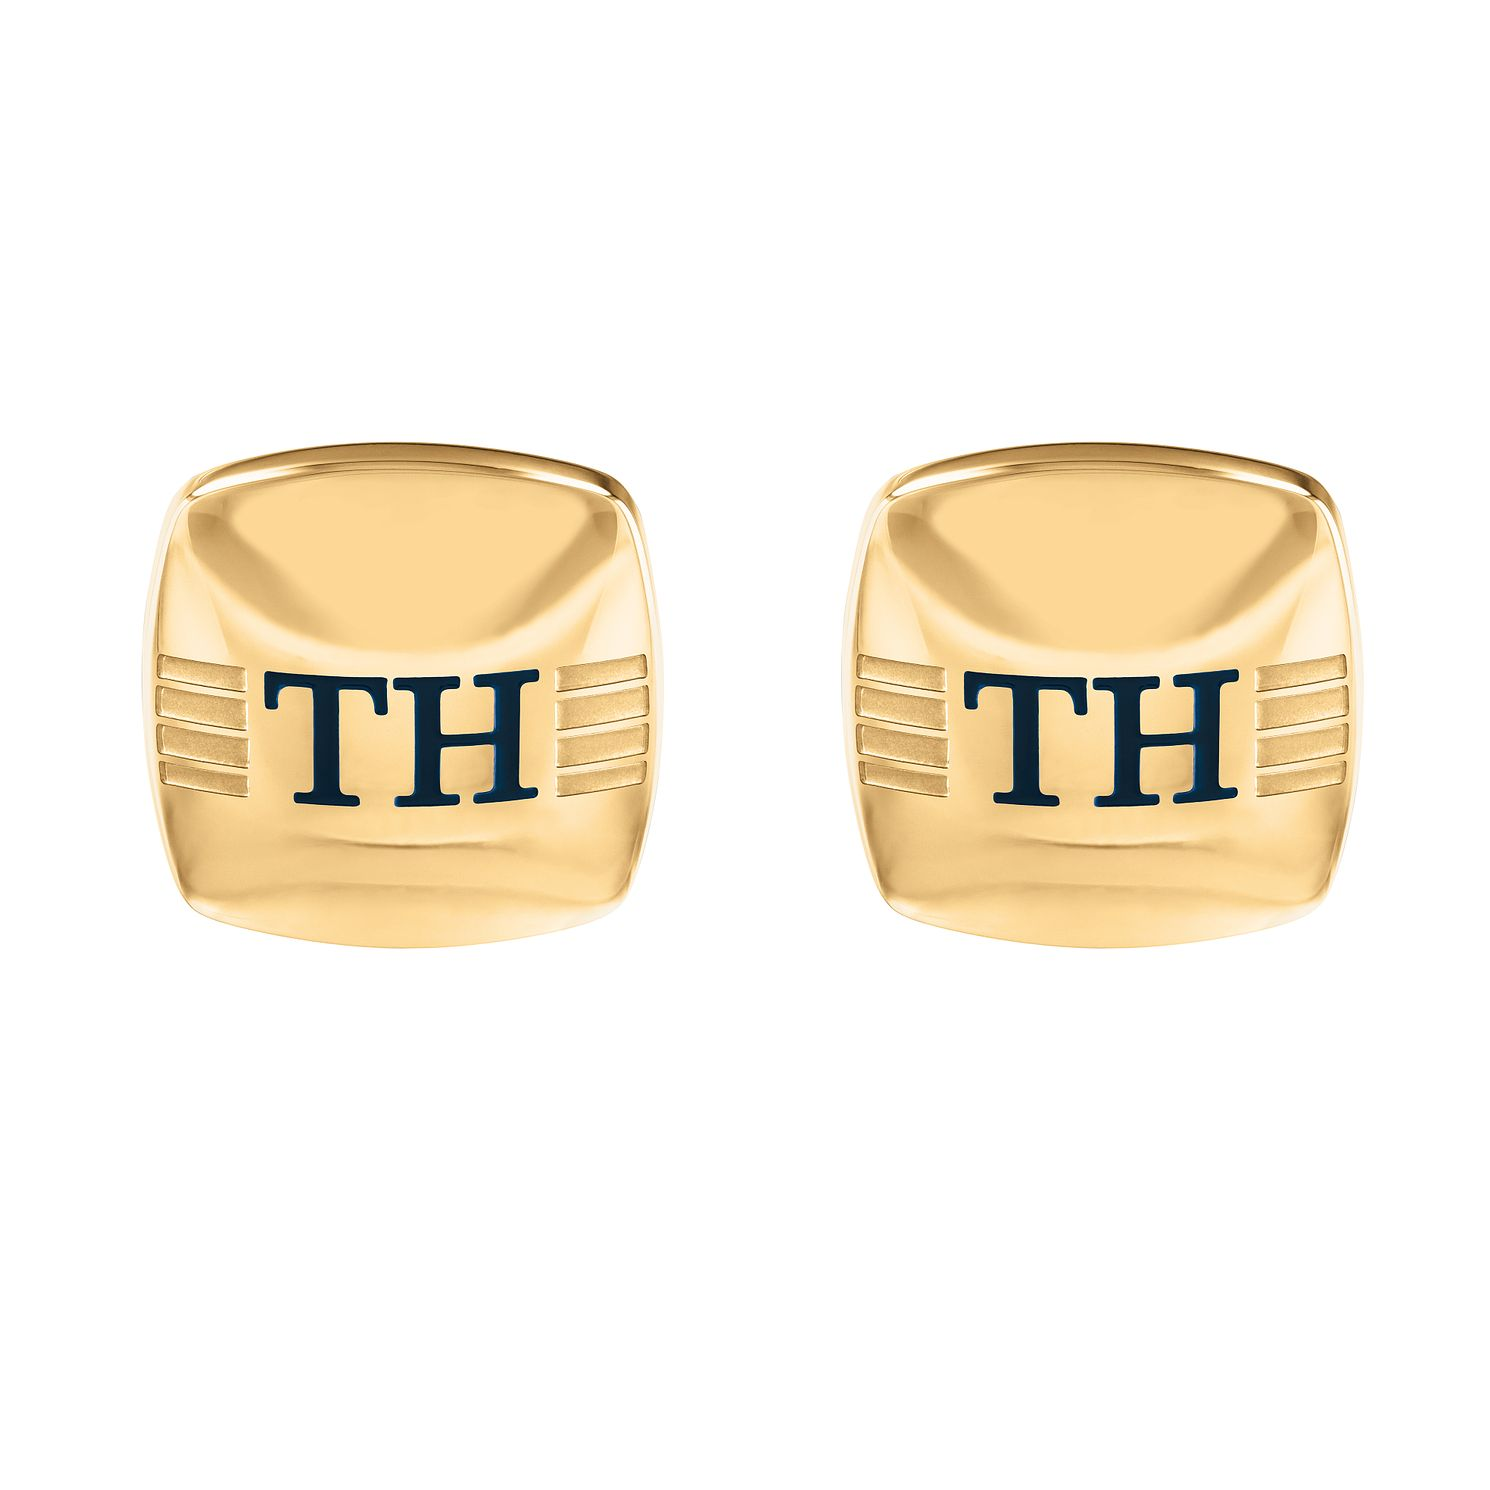 Tommy Hilfiger Rounded Square Yellow Gold Plated Cufflinks - Product number 5250749